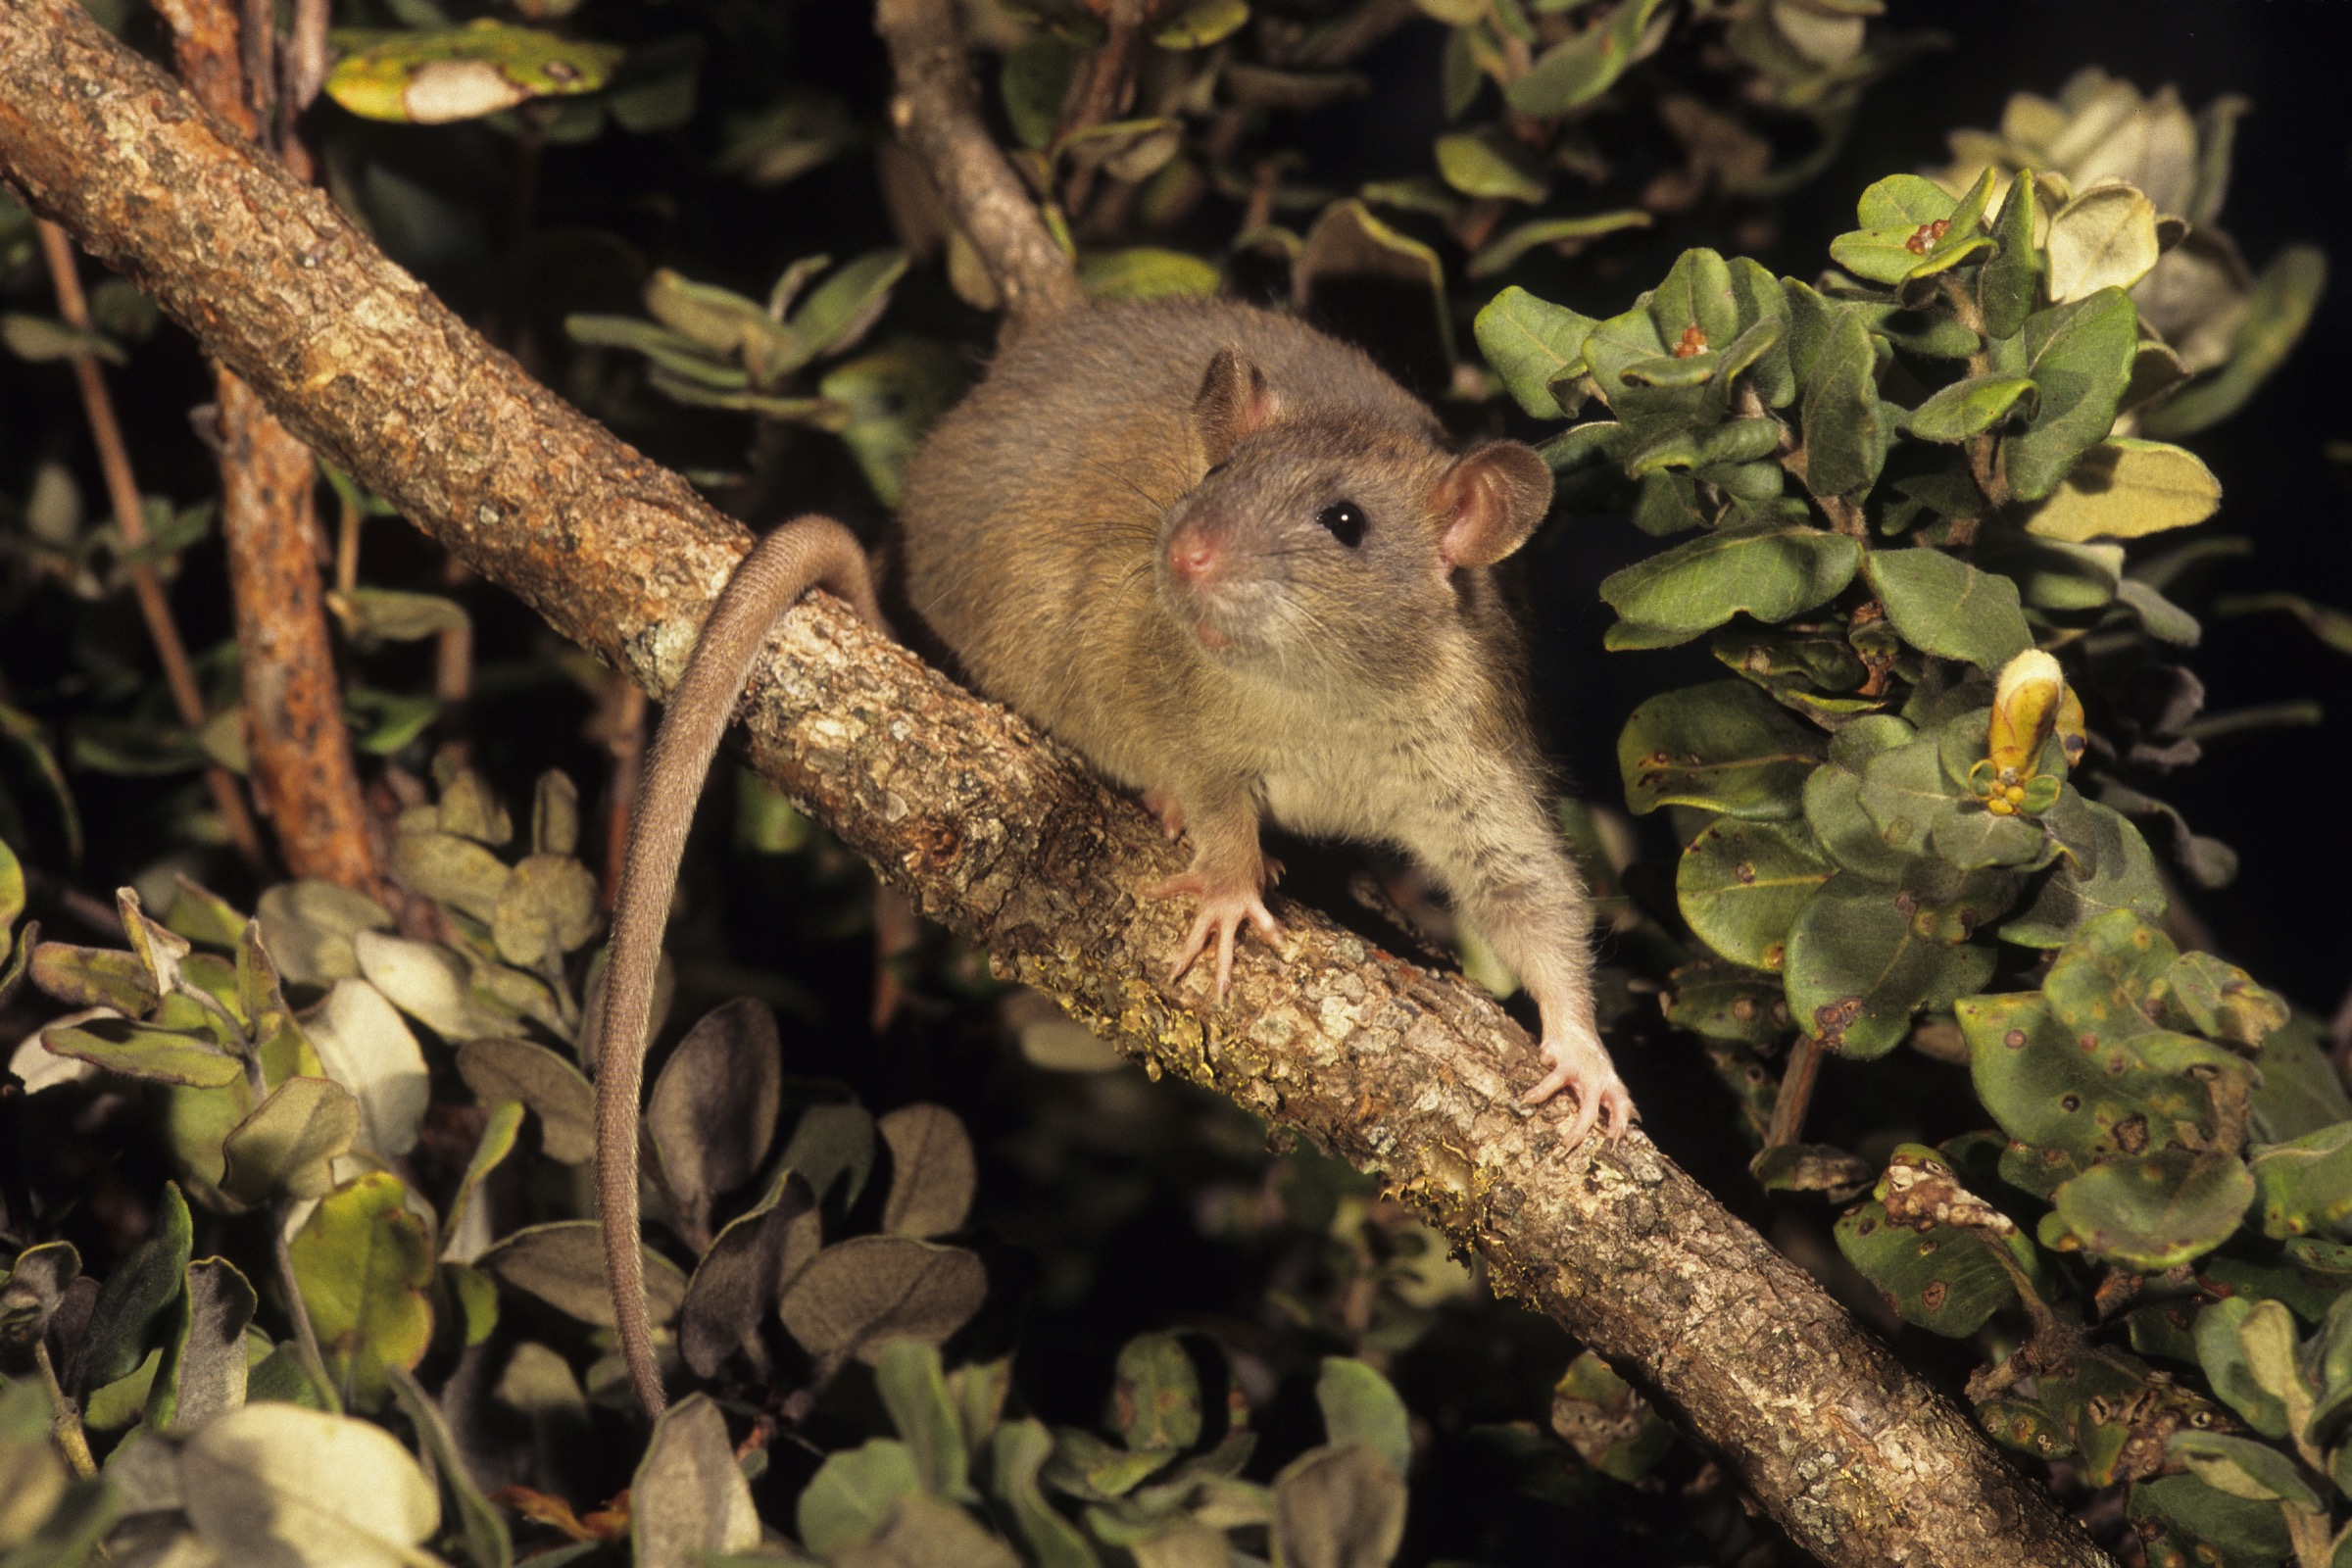 The black rat(Rattus rattus) is one of several invasive species that have decimated Hawaii's native wildlife populations.It is one of the most damaging species to have been introduced to the islands.Photograph by Jack Jeffrey